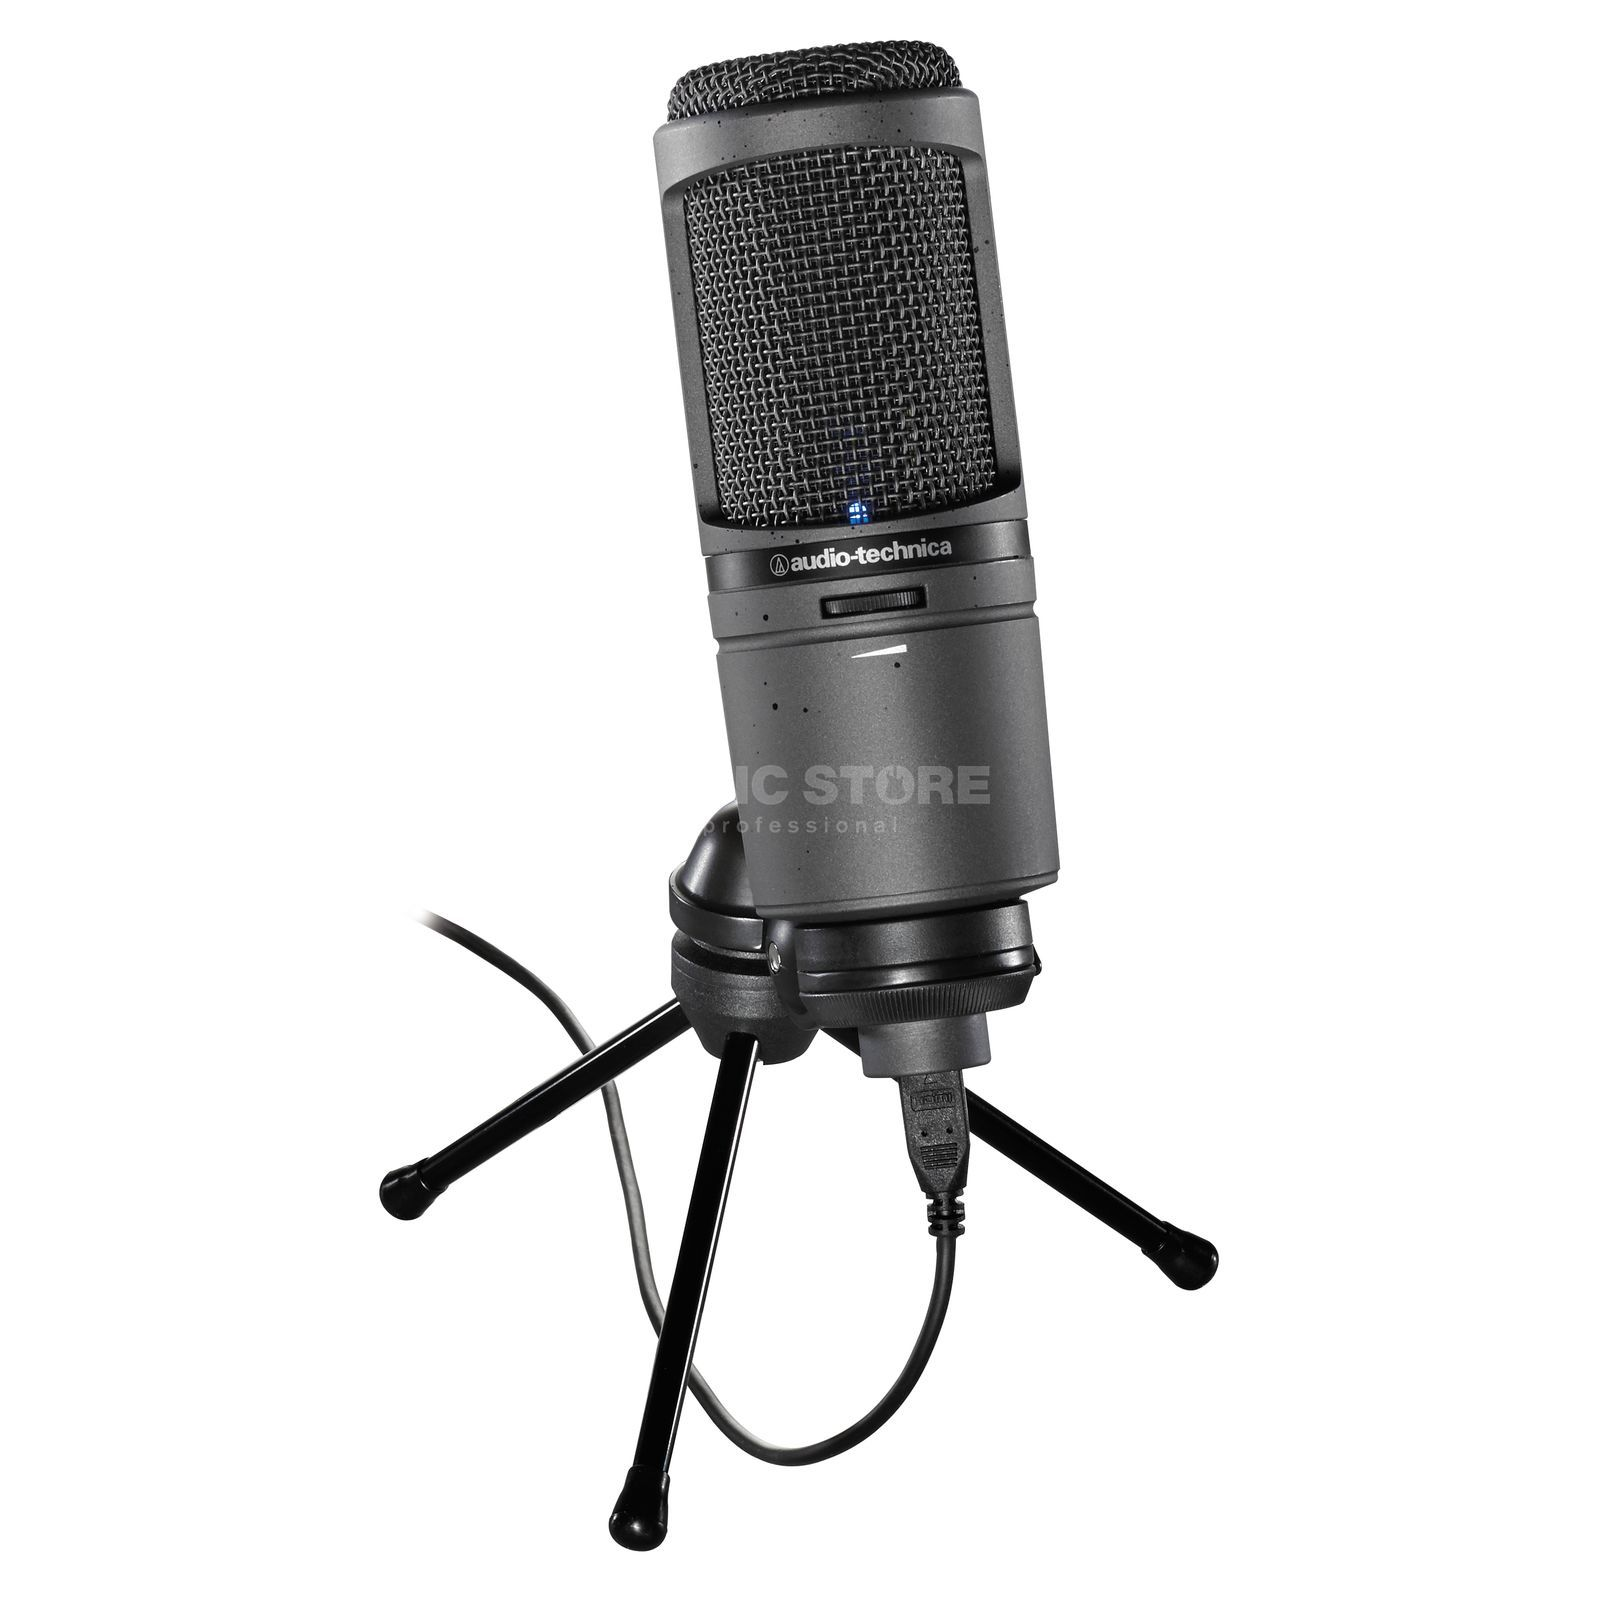 Audio-Technica AT2020 USBi USB Kondensatormikrofon Produktbild